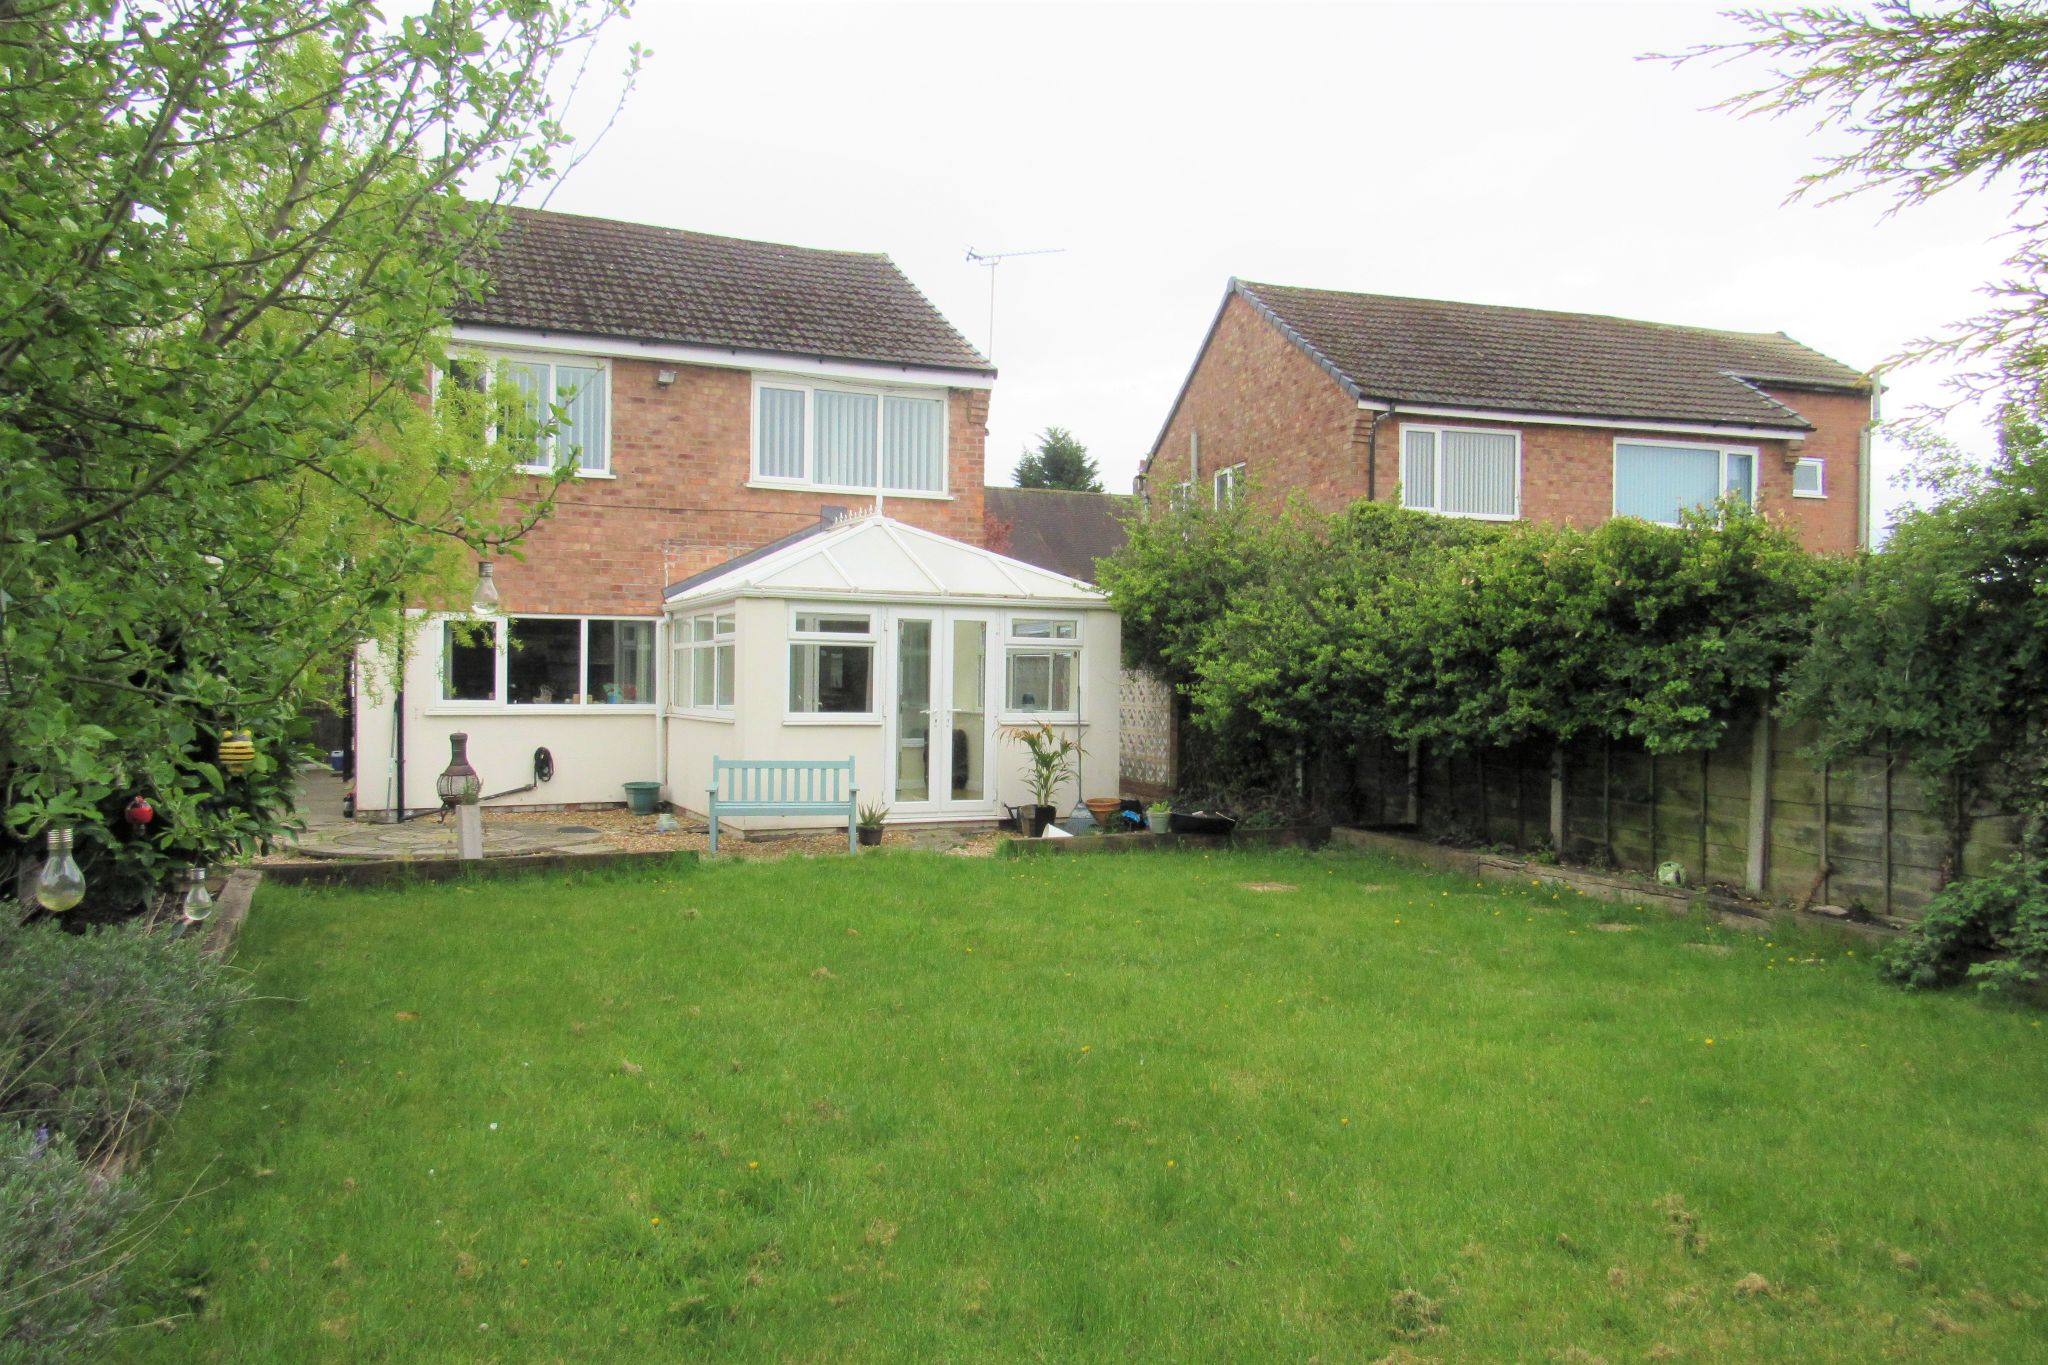 3 bedroom detached house For Sale in Manchester - Photograph 20.